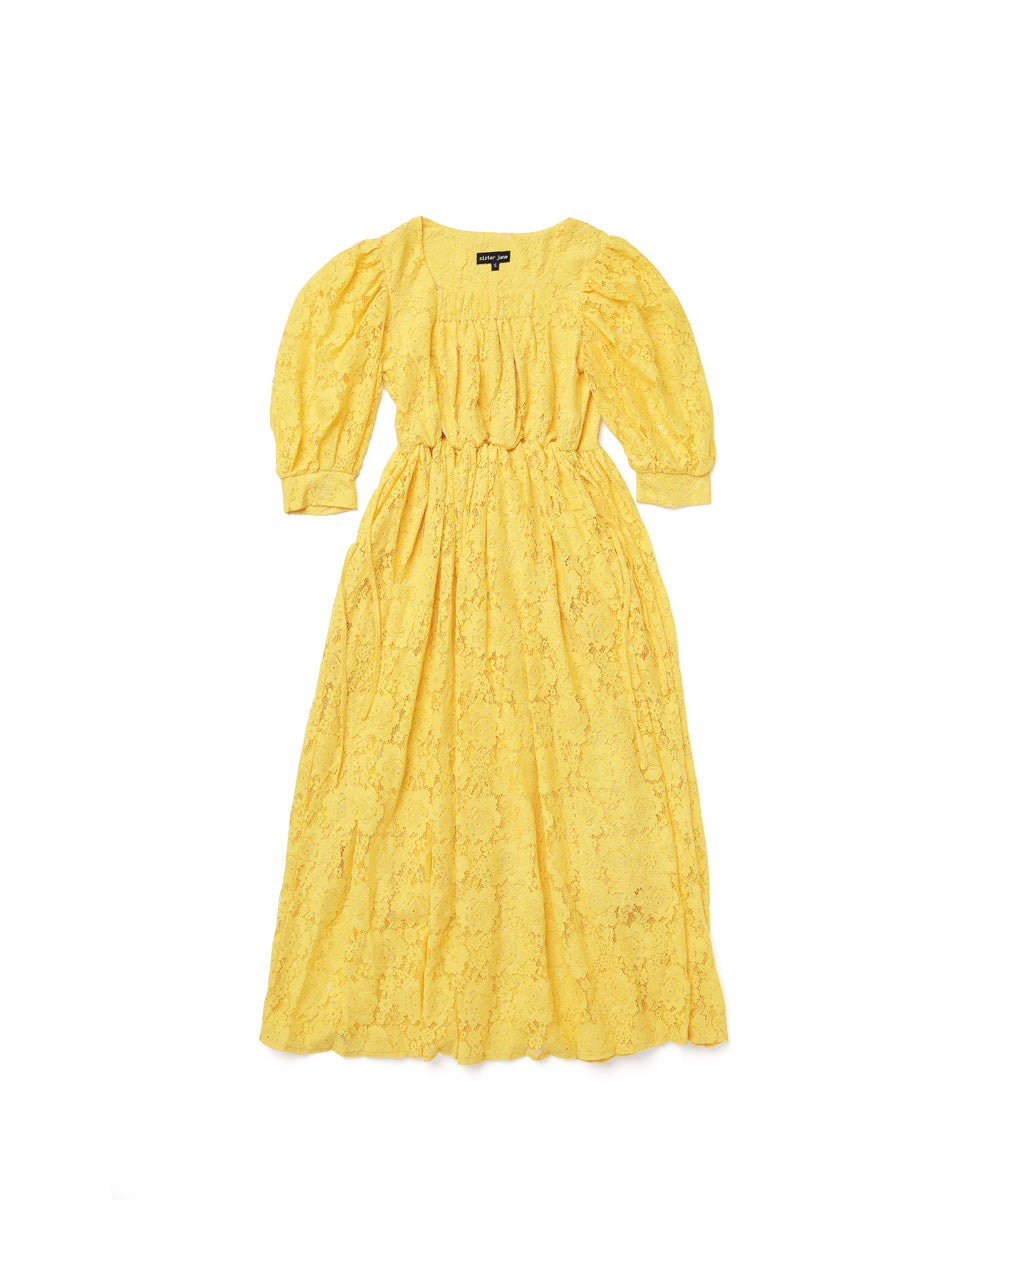 Midi length yellow lace dress with cropped puff sleeves.